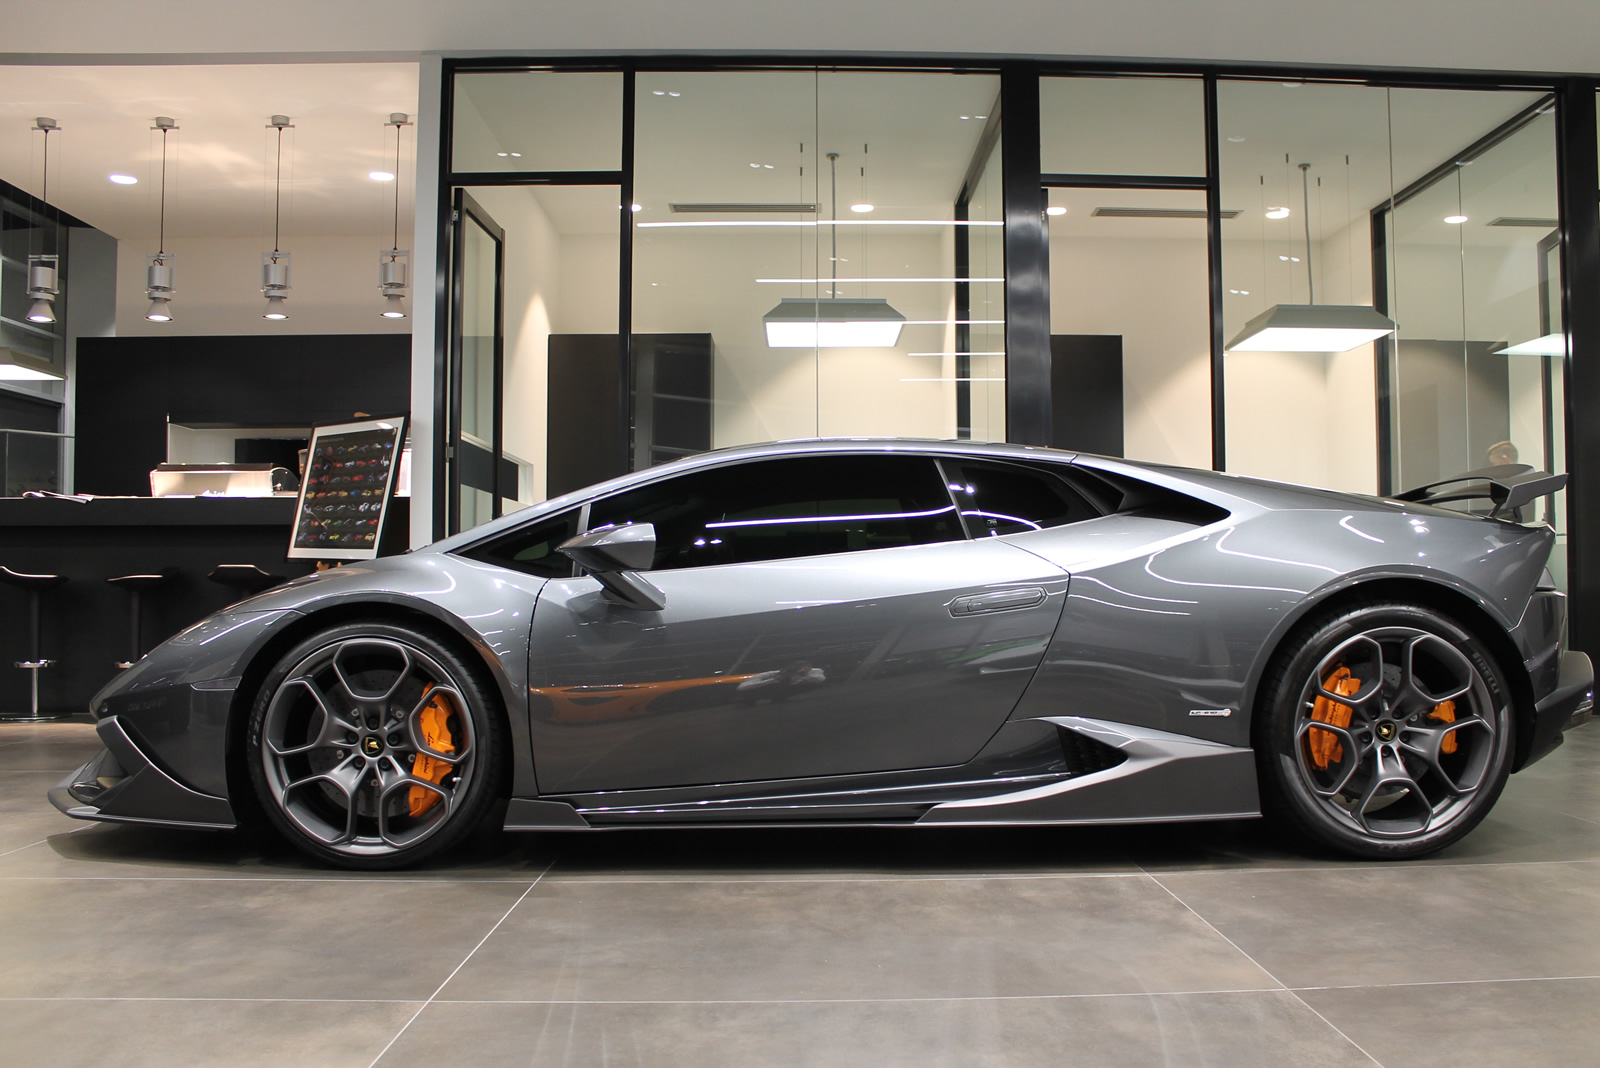 Lamborghini Huracan Hire Melbourne By Exotic Limo